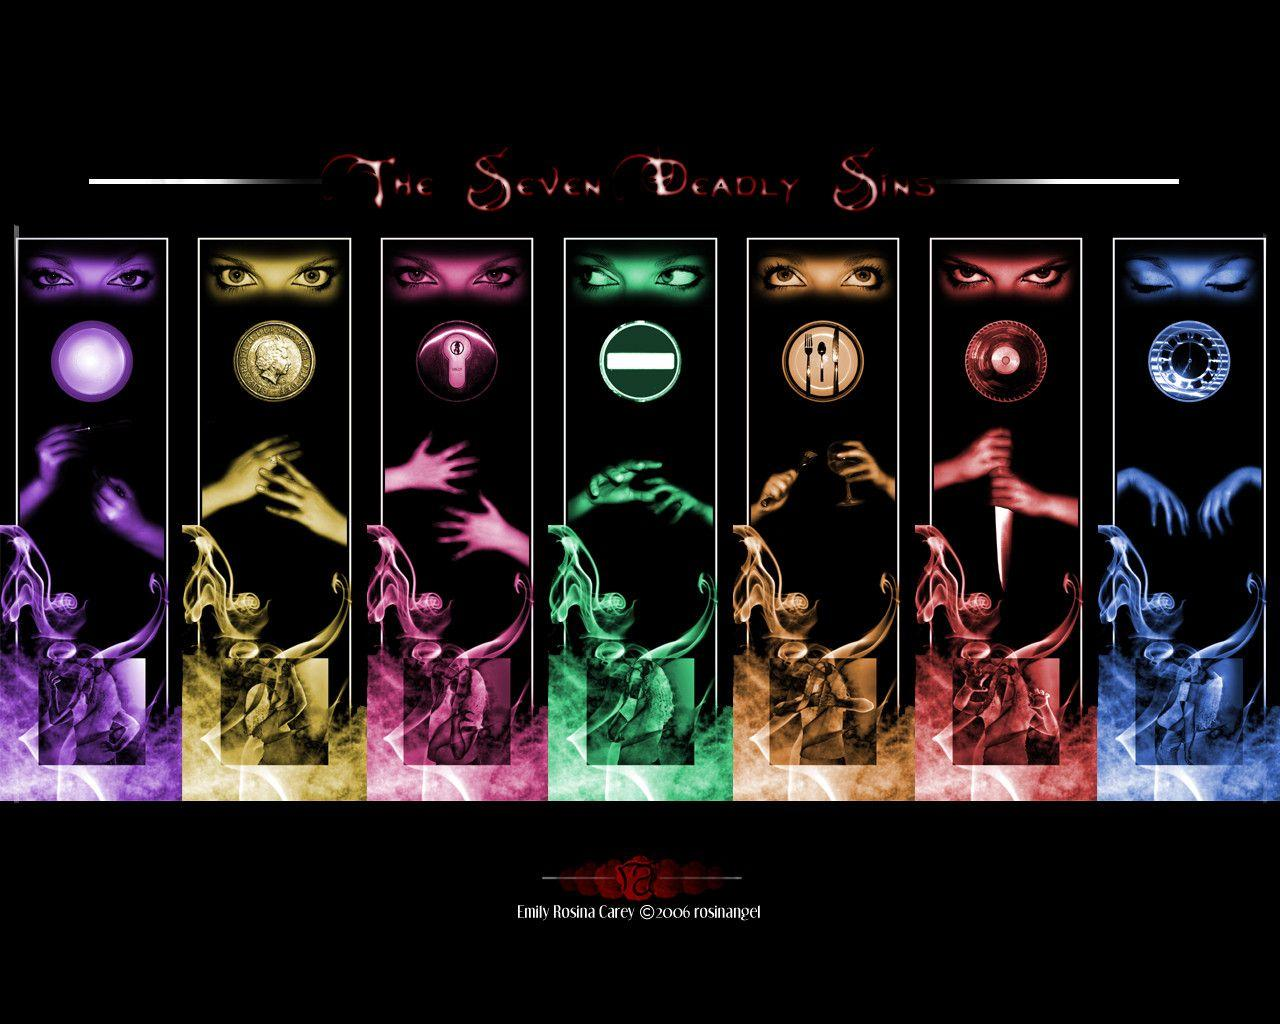 7 Deadly Sins Wallpapers - Wallpaper Cave